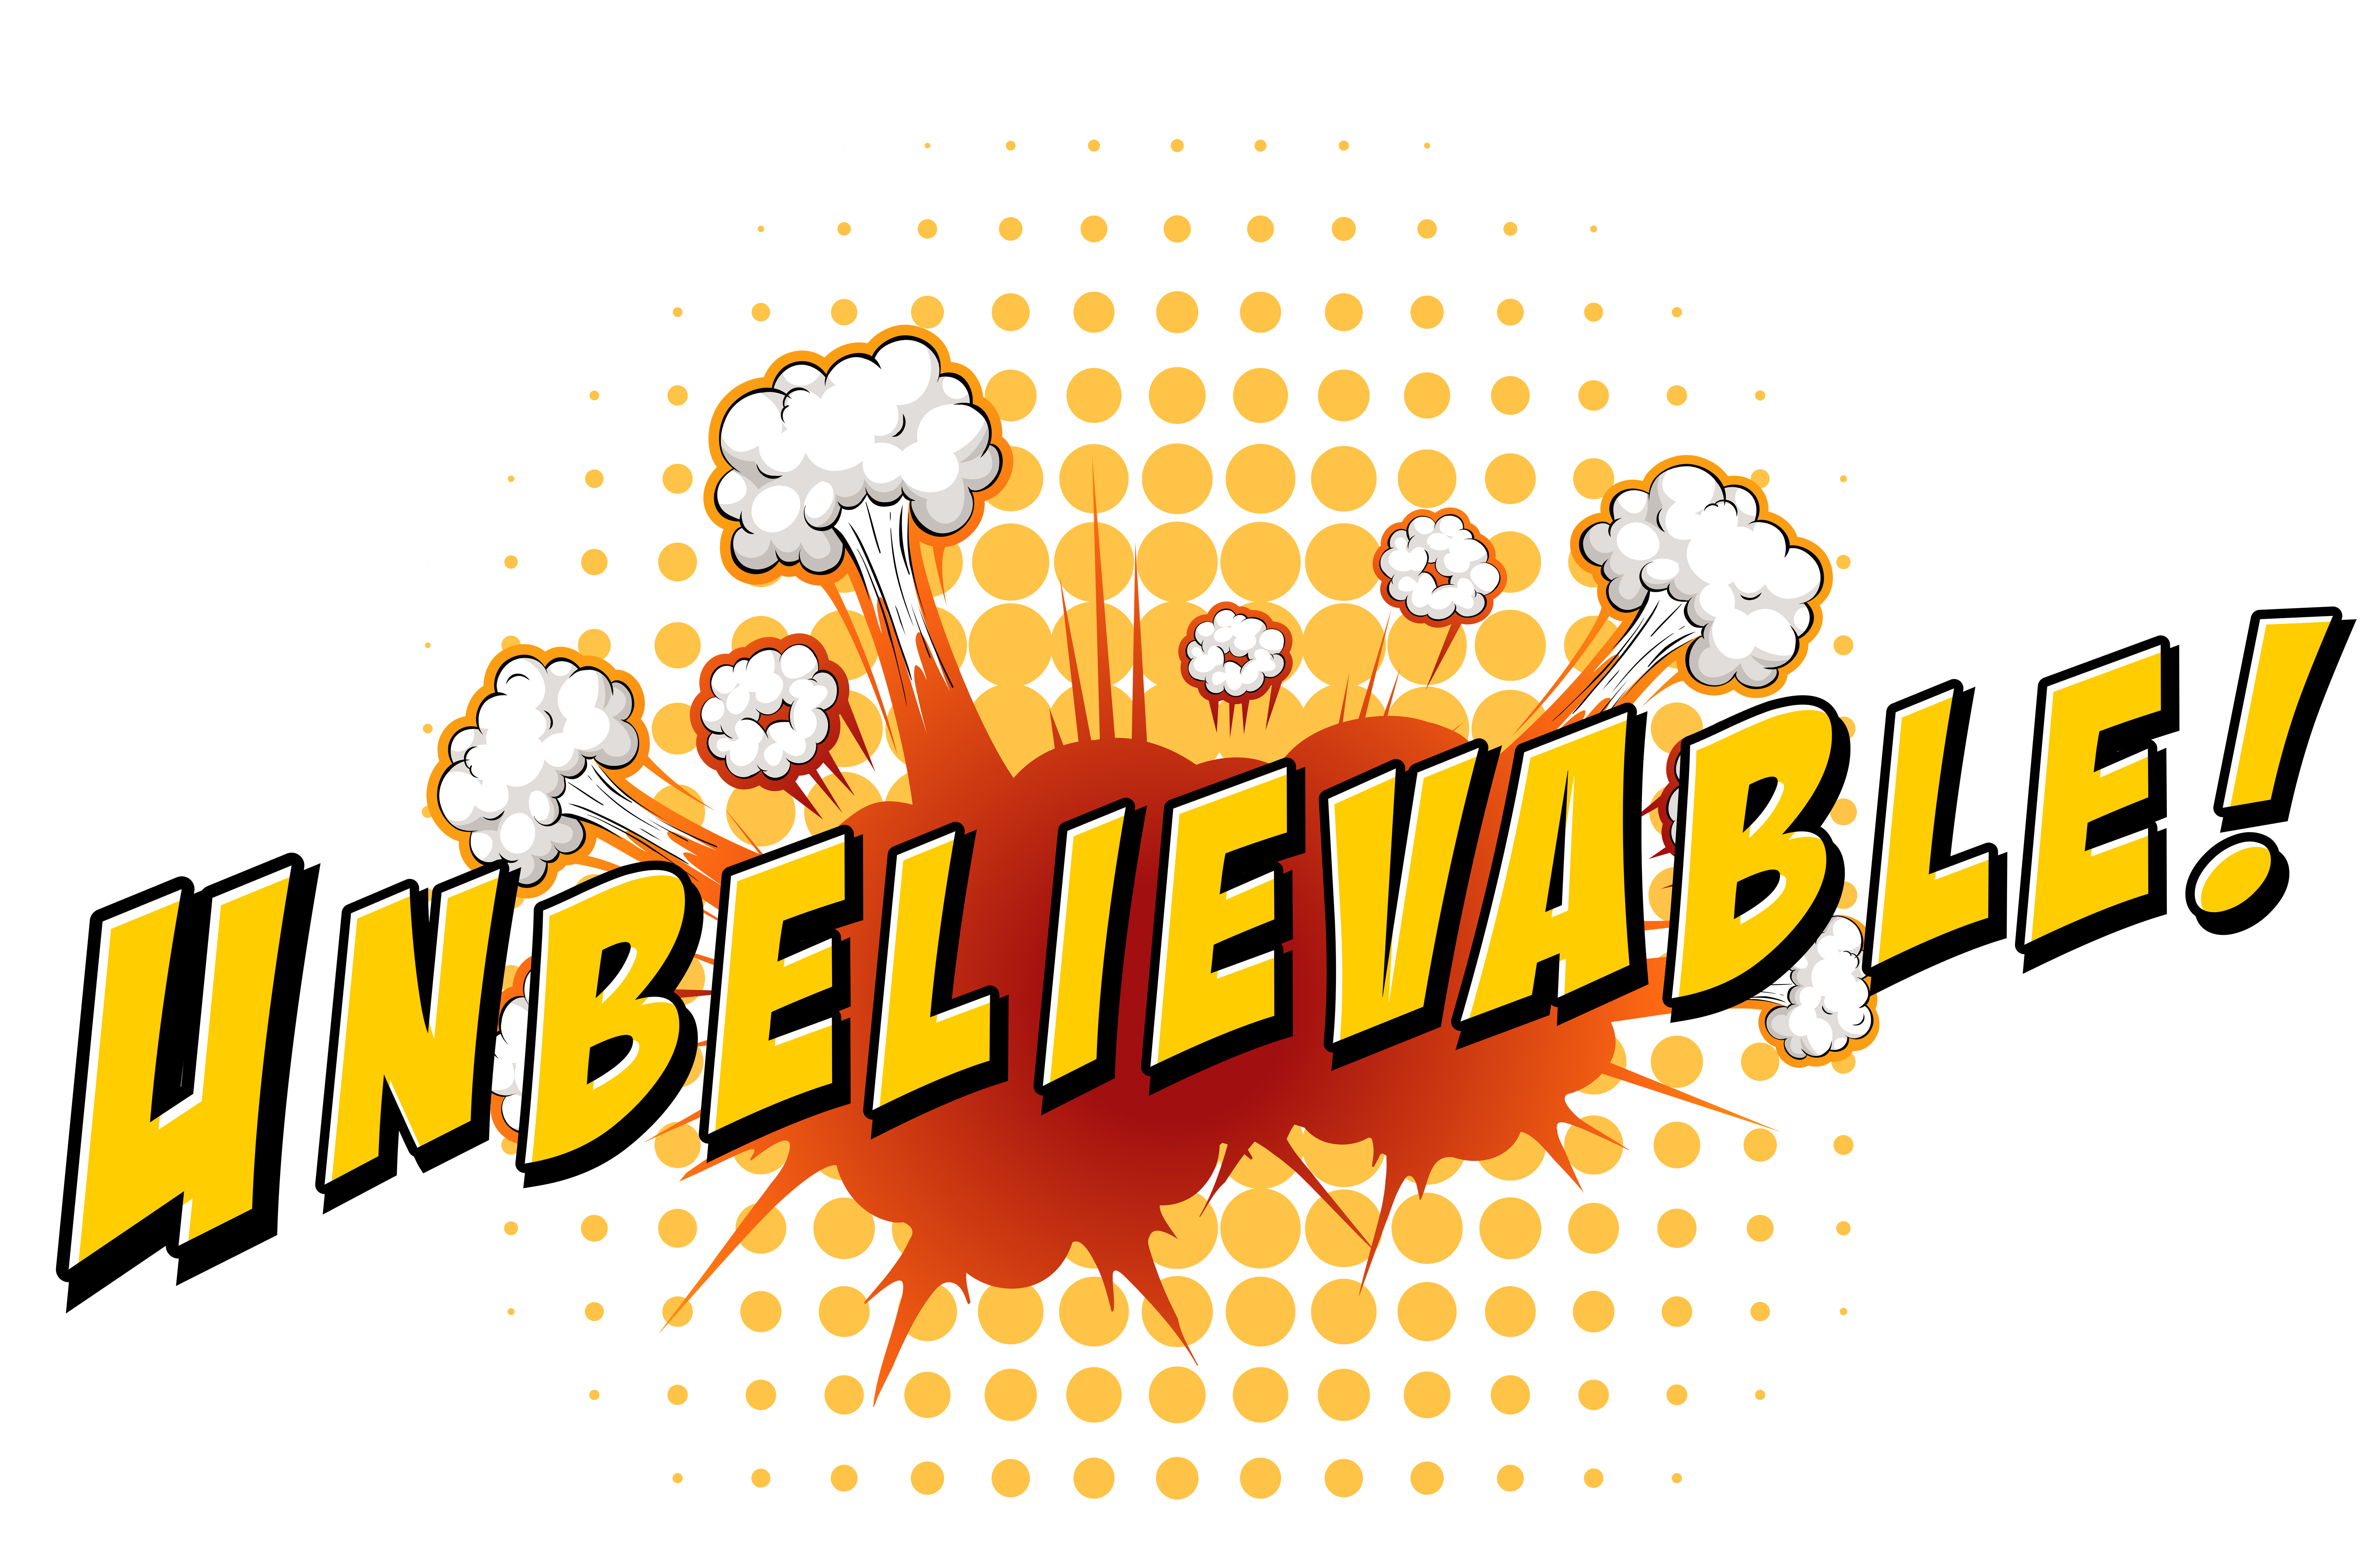 of an invisible rabbit and an unbelievable resurrection resurrection clipart/gifs resurrection images clipart